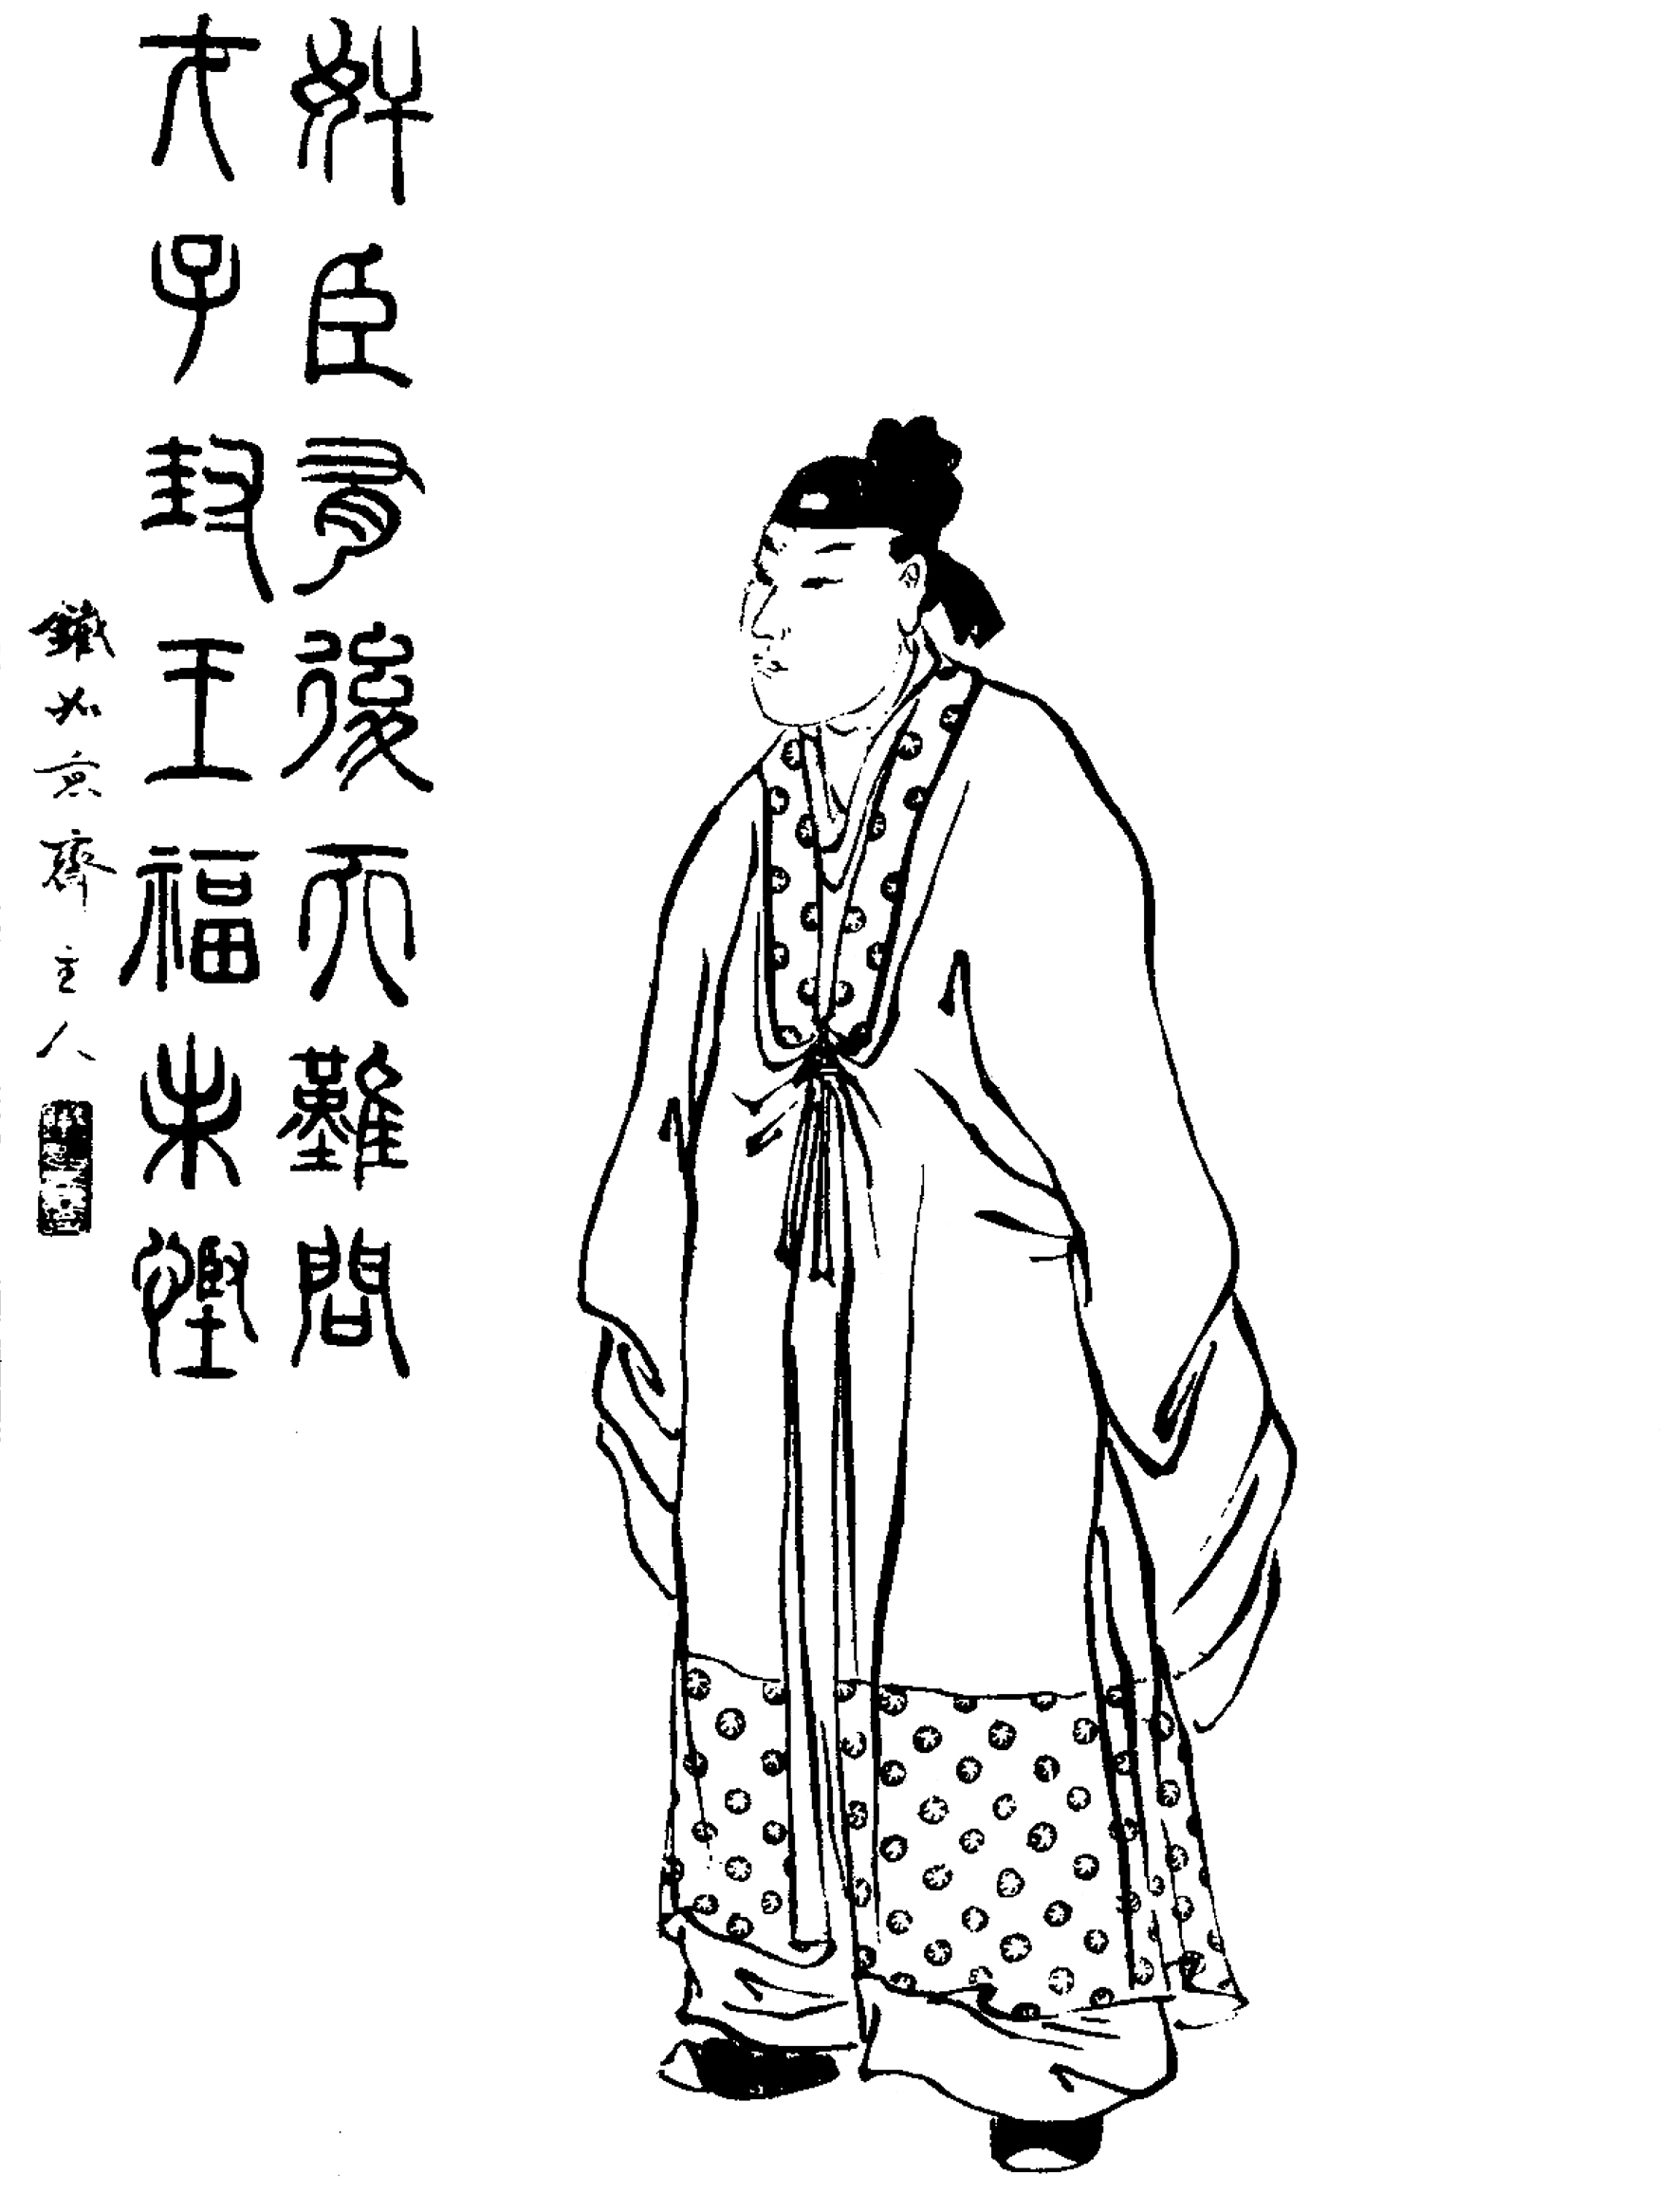 Cao Zhi - A Poem in Exchange for the Life of Cáo Zhí